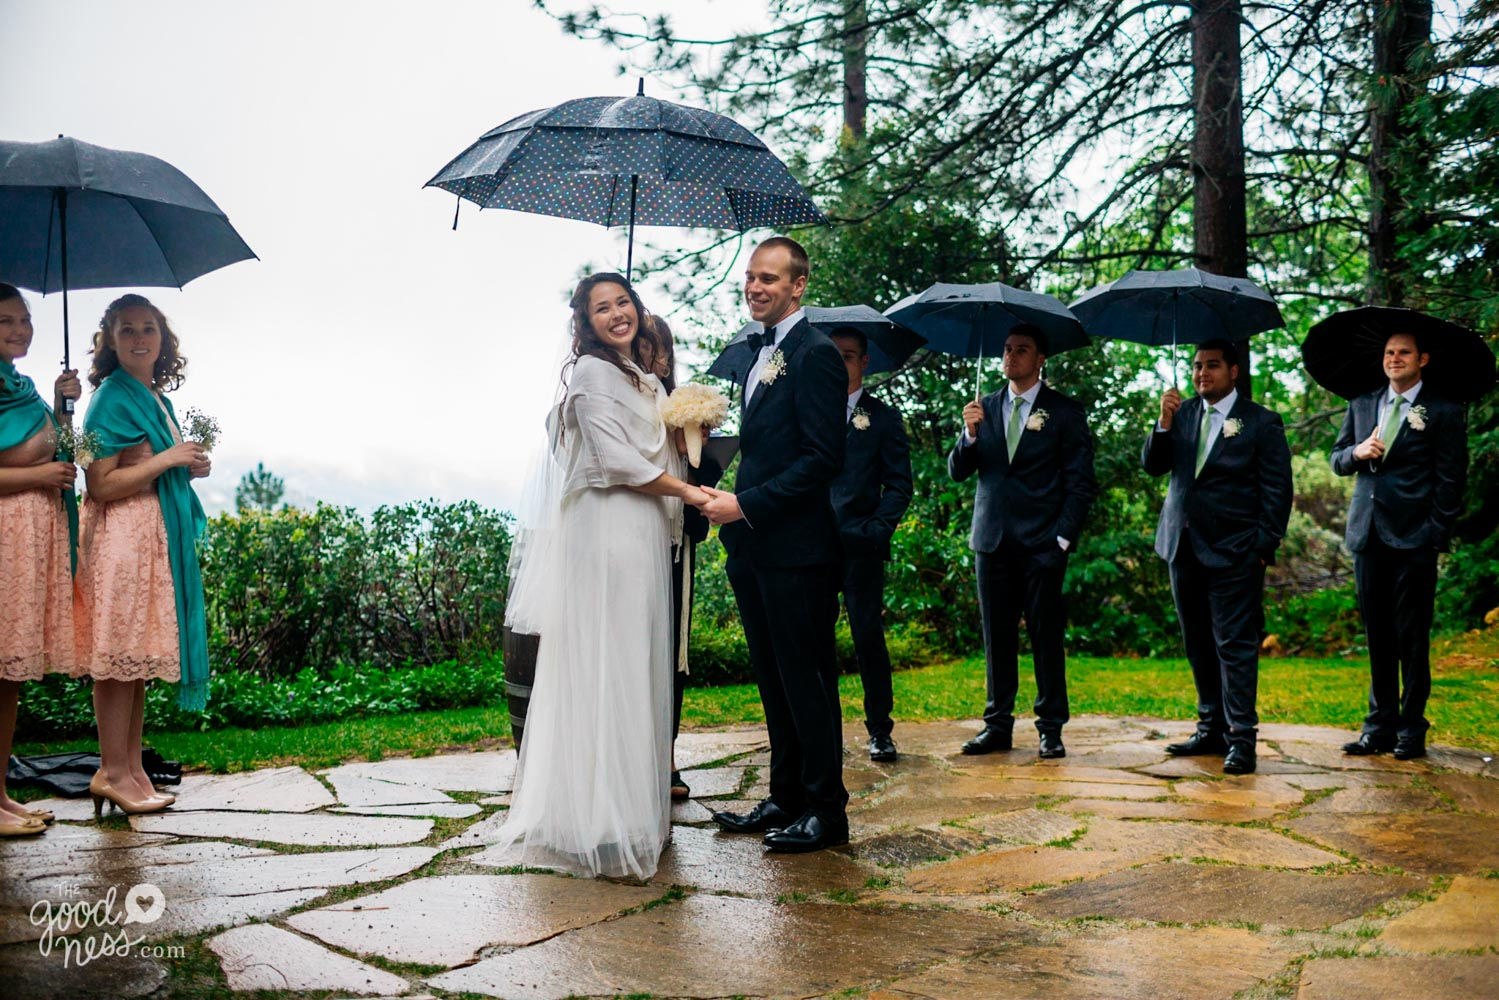 Smiling bride and groom, with wedding party in background holding umbrellas during rainy wedding ceremony in Foresthill, California.